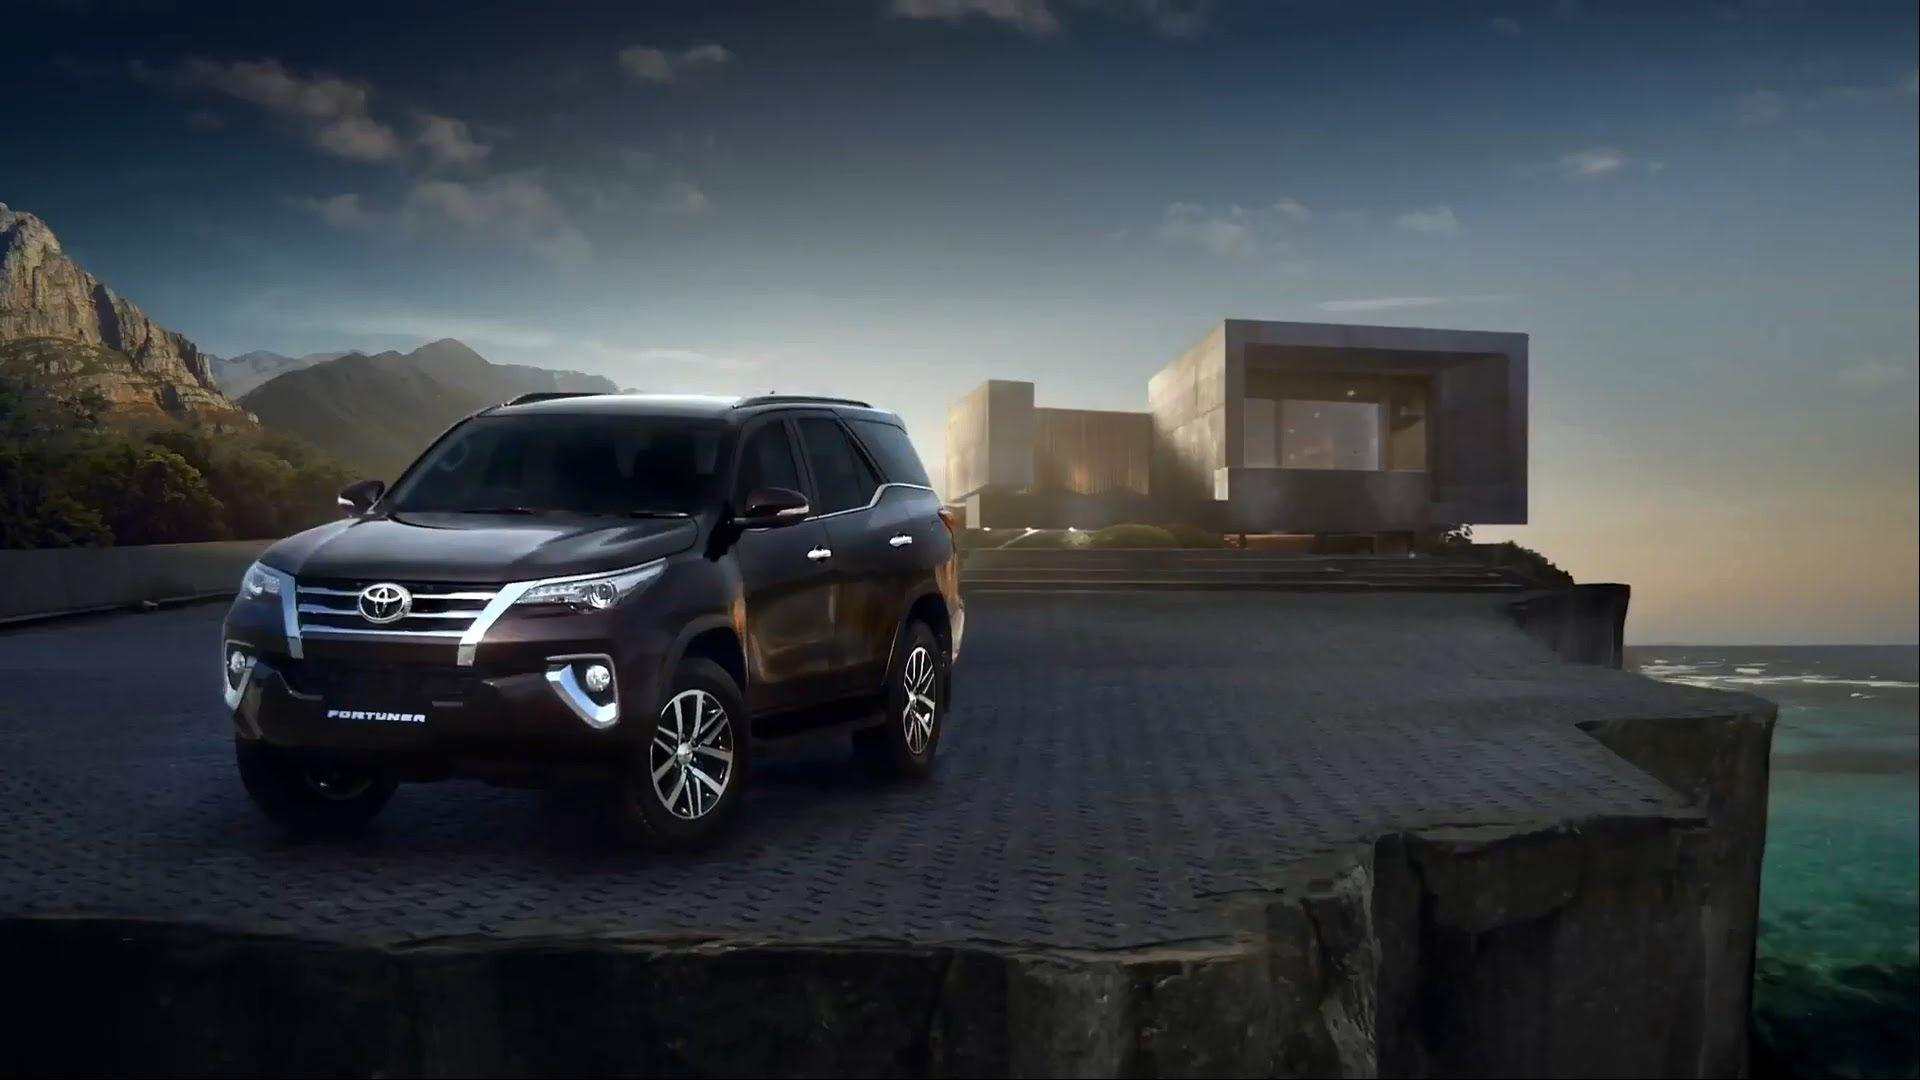 Cool Toyota Fortuner 2016 HD Wallpaper | Ambition | Pinterest ...